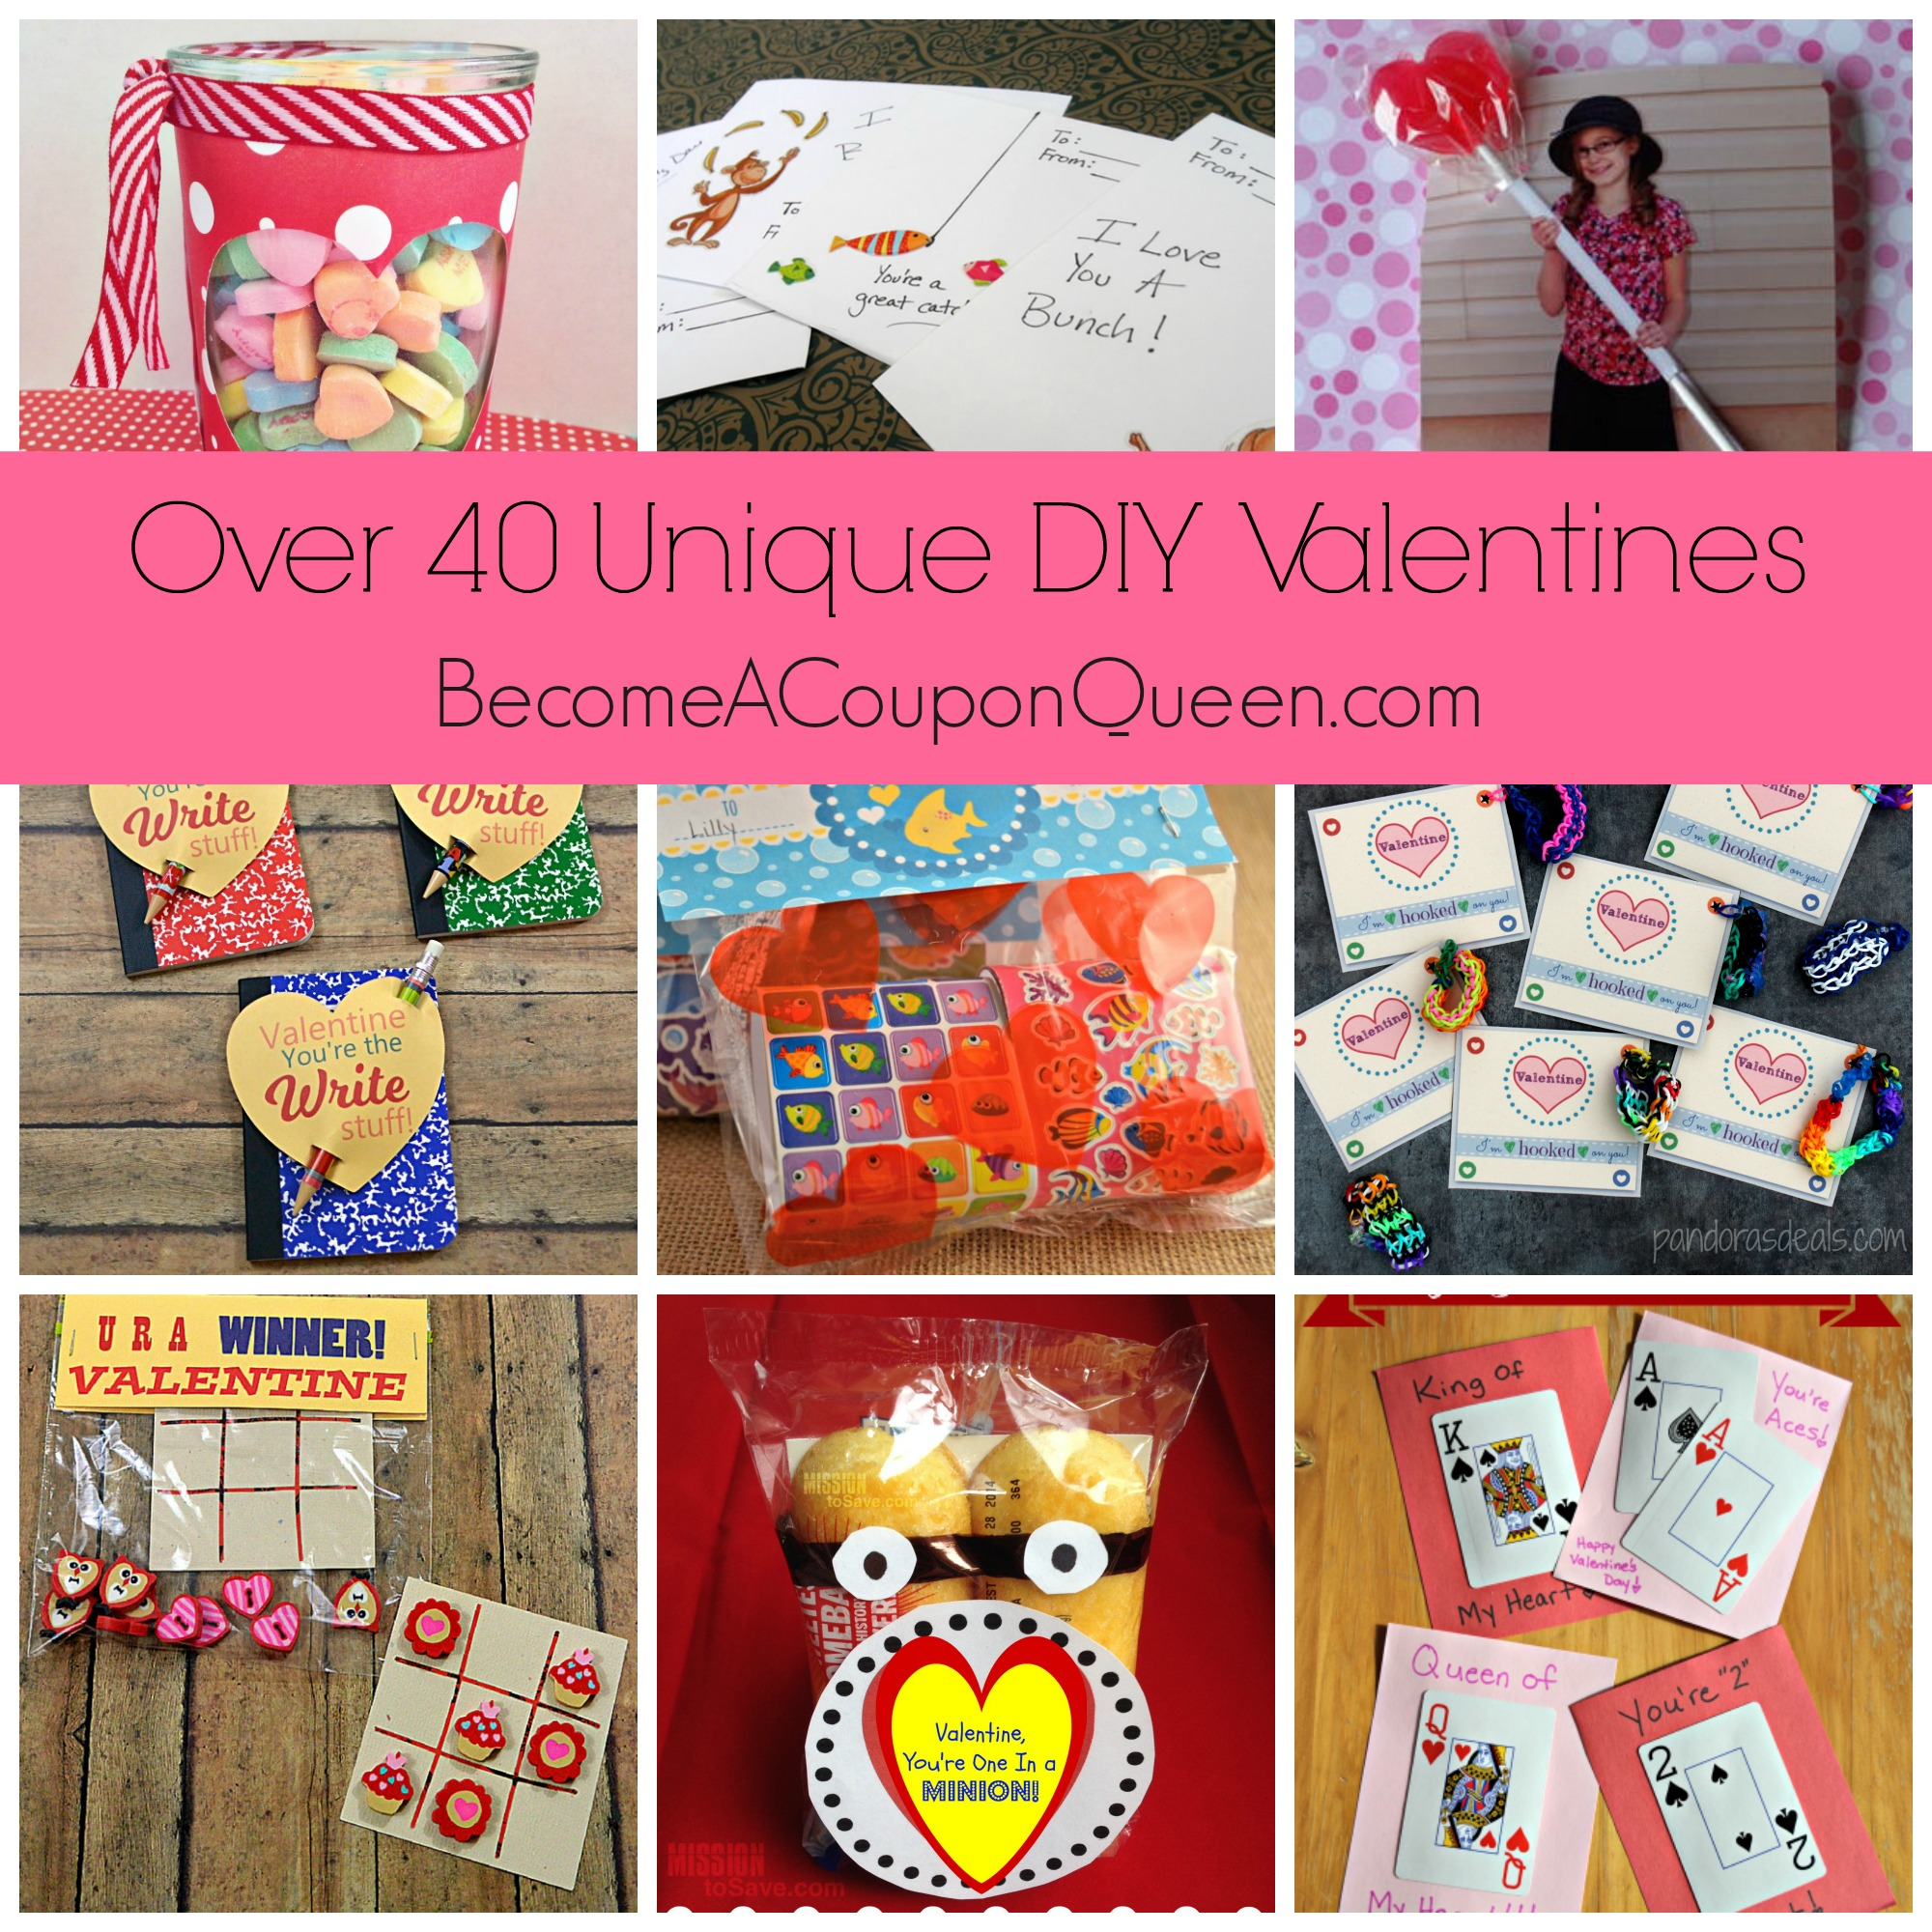 Over 40 Unique DIY Valentines!